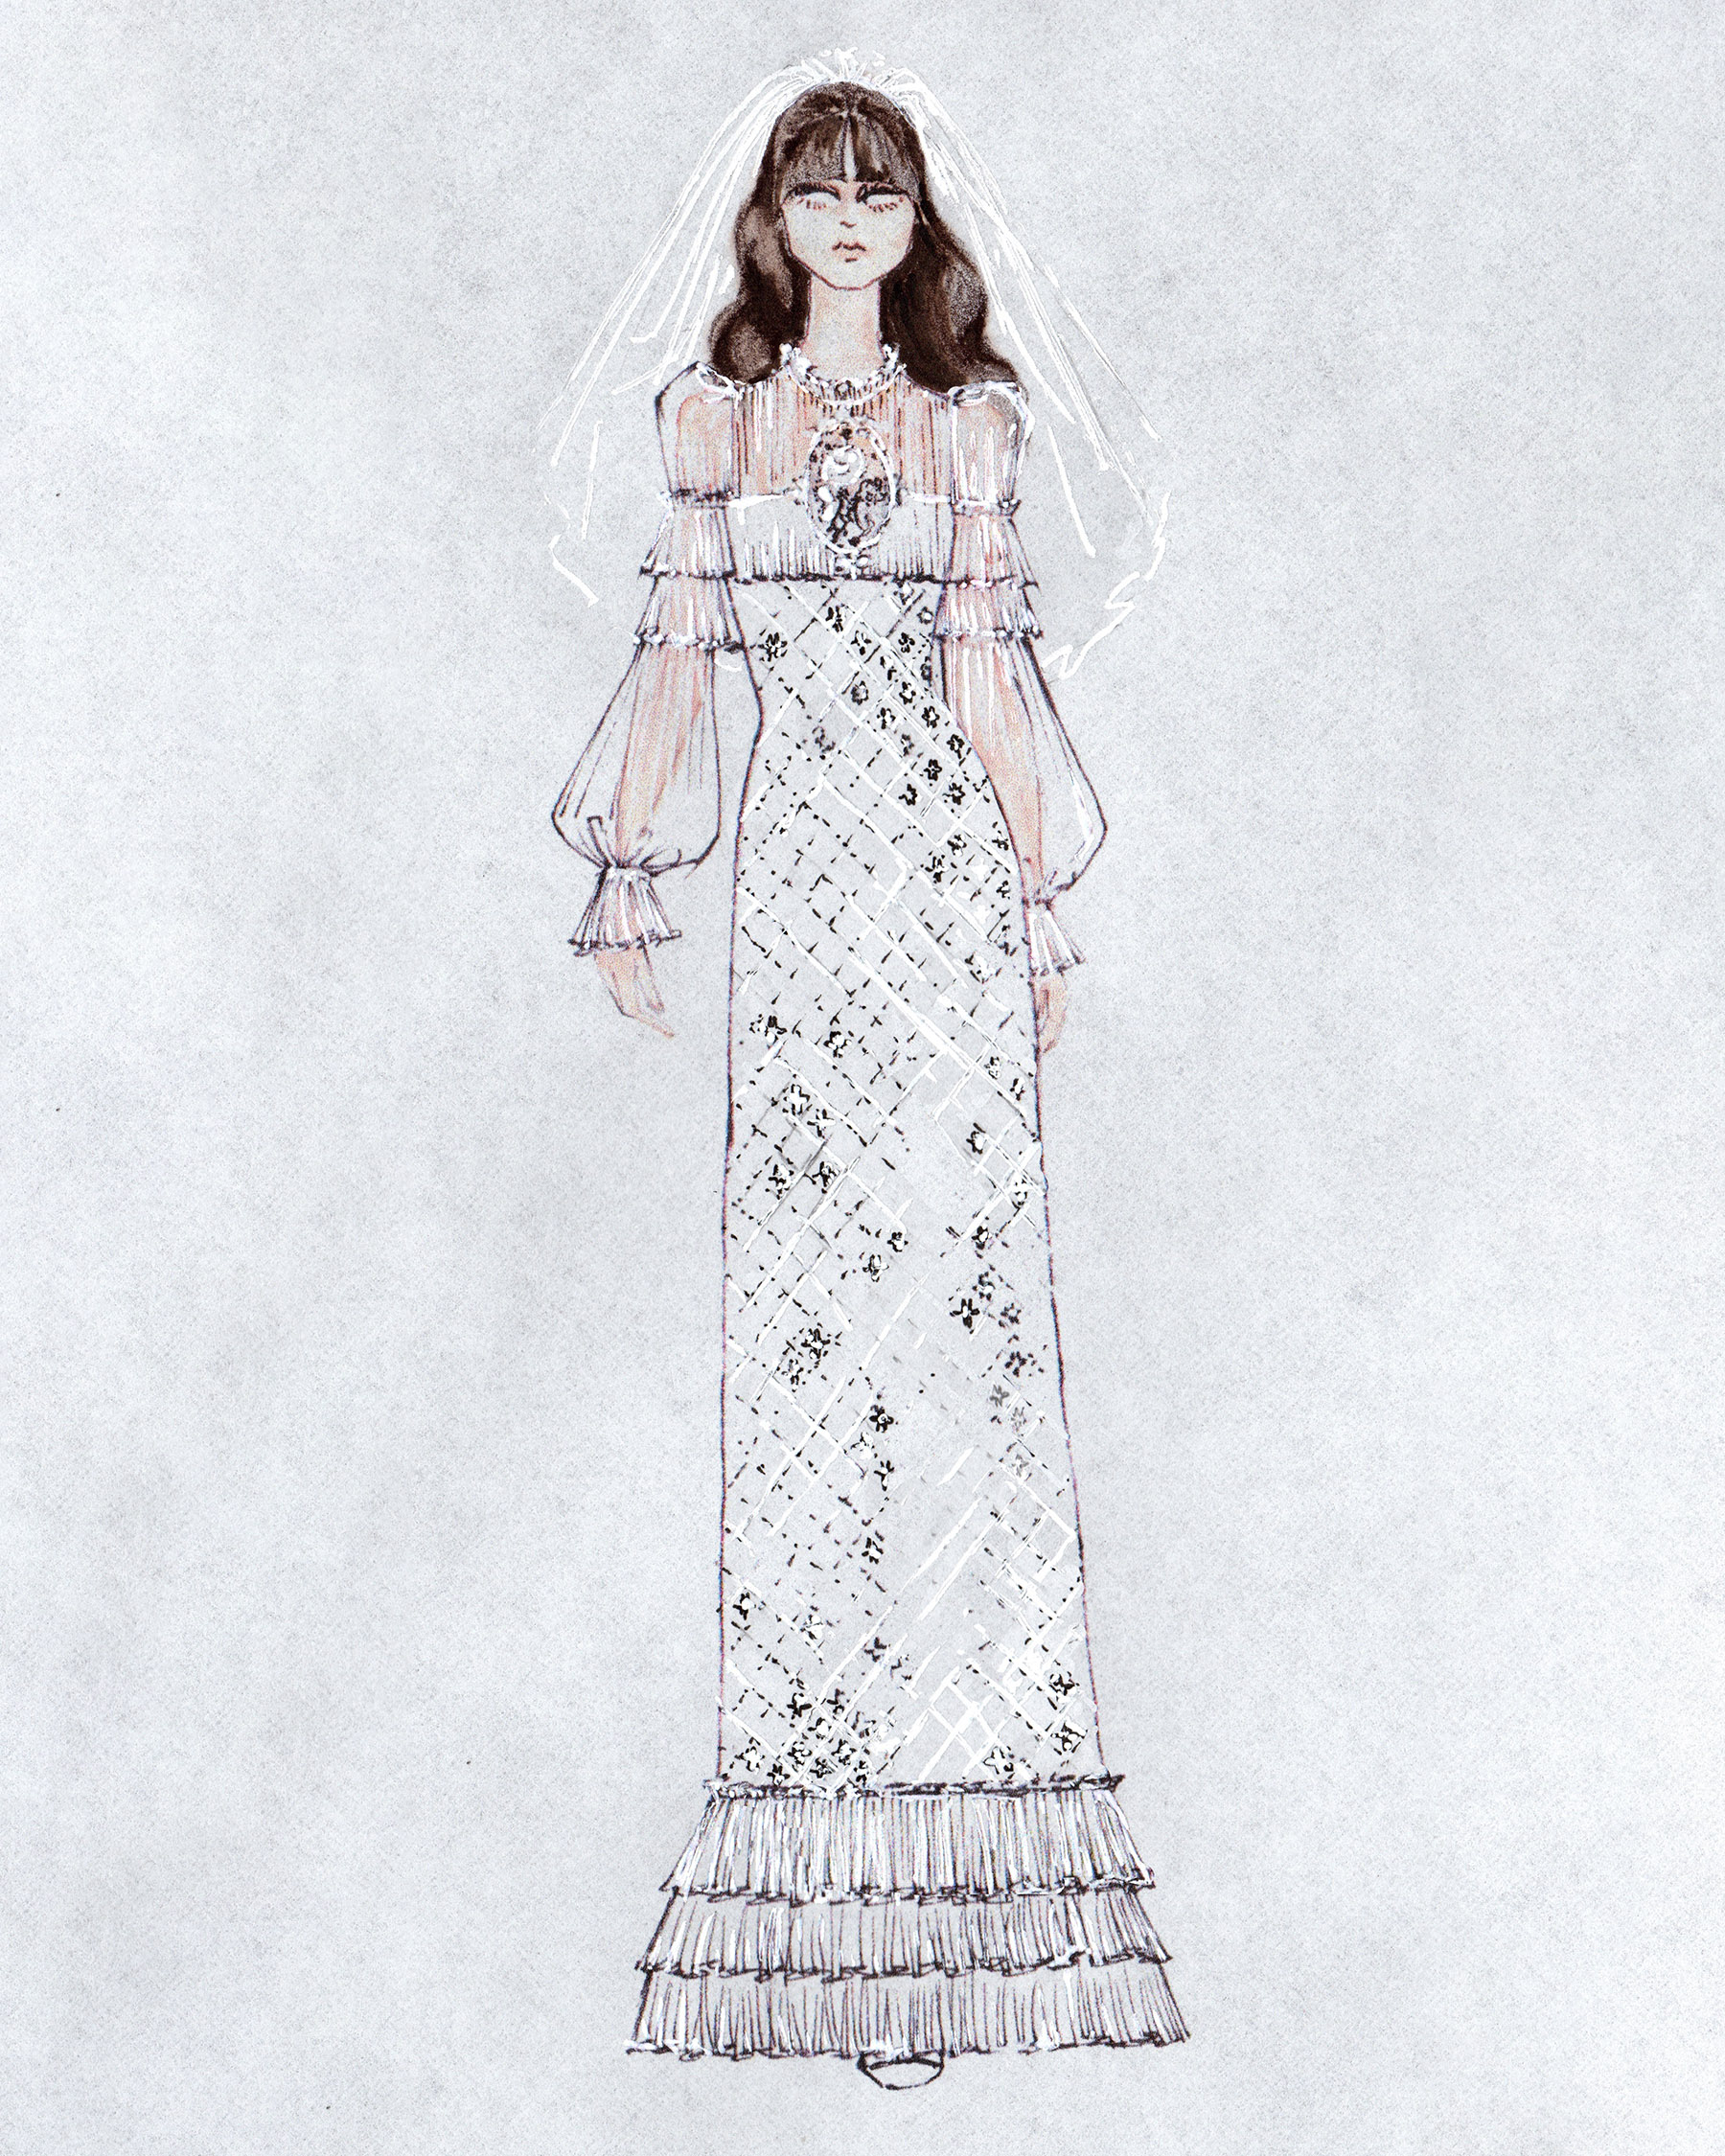 bridal fashion week sketches fall 2019 honor